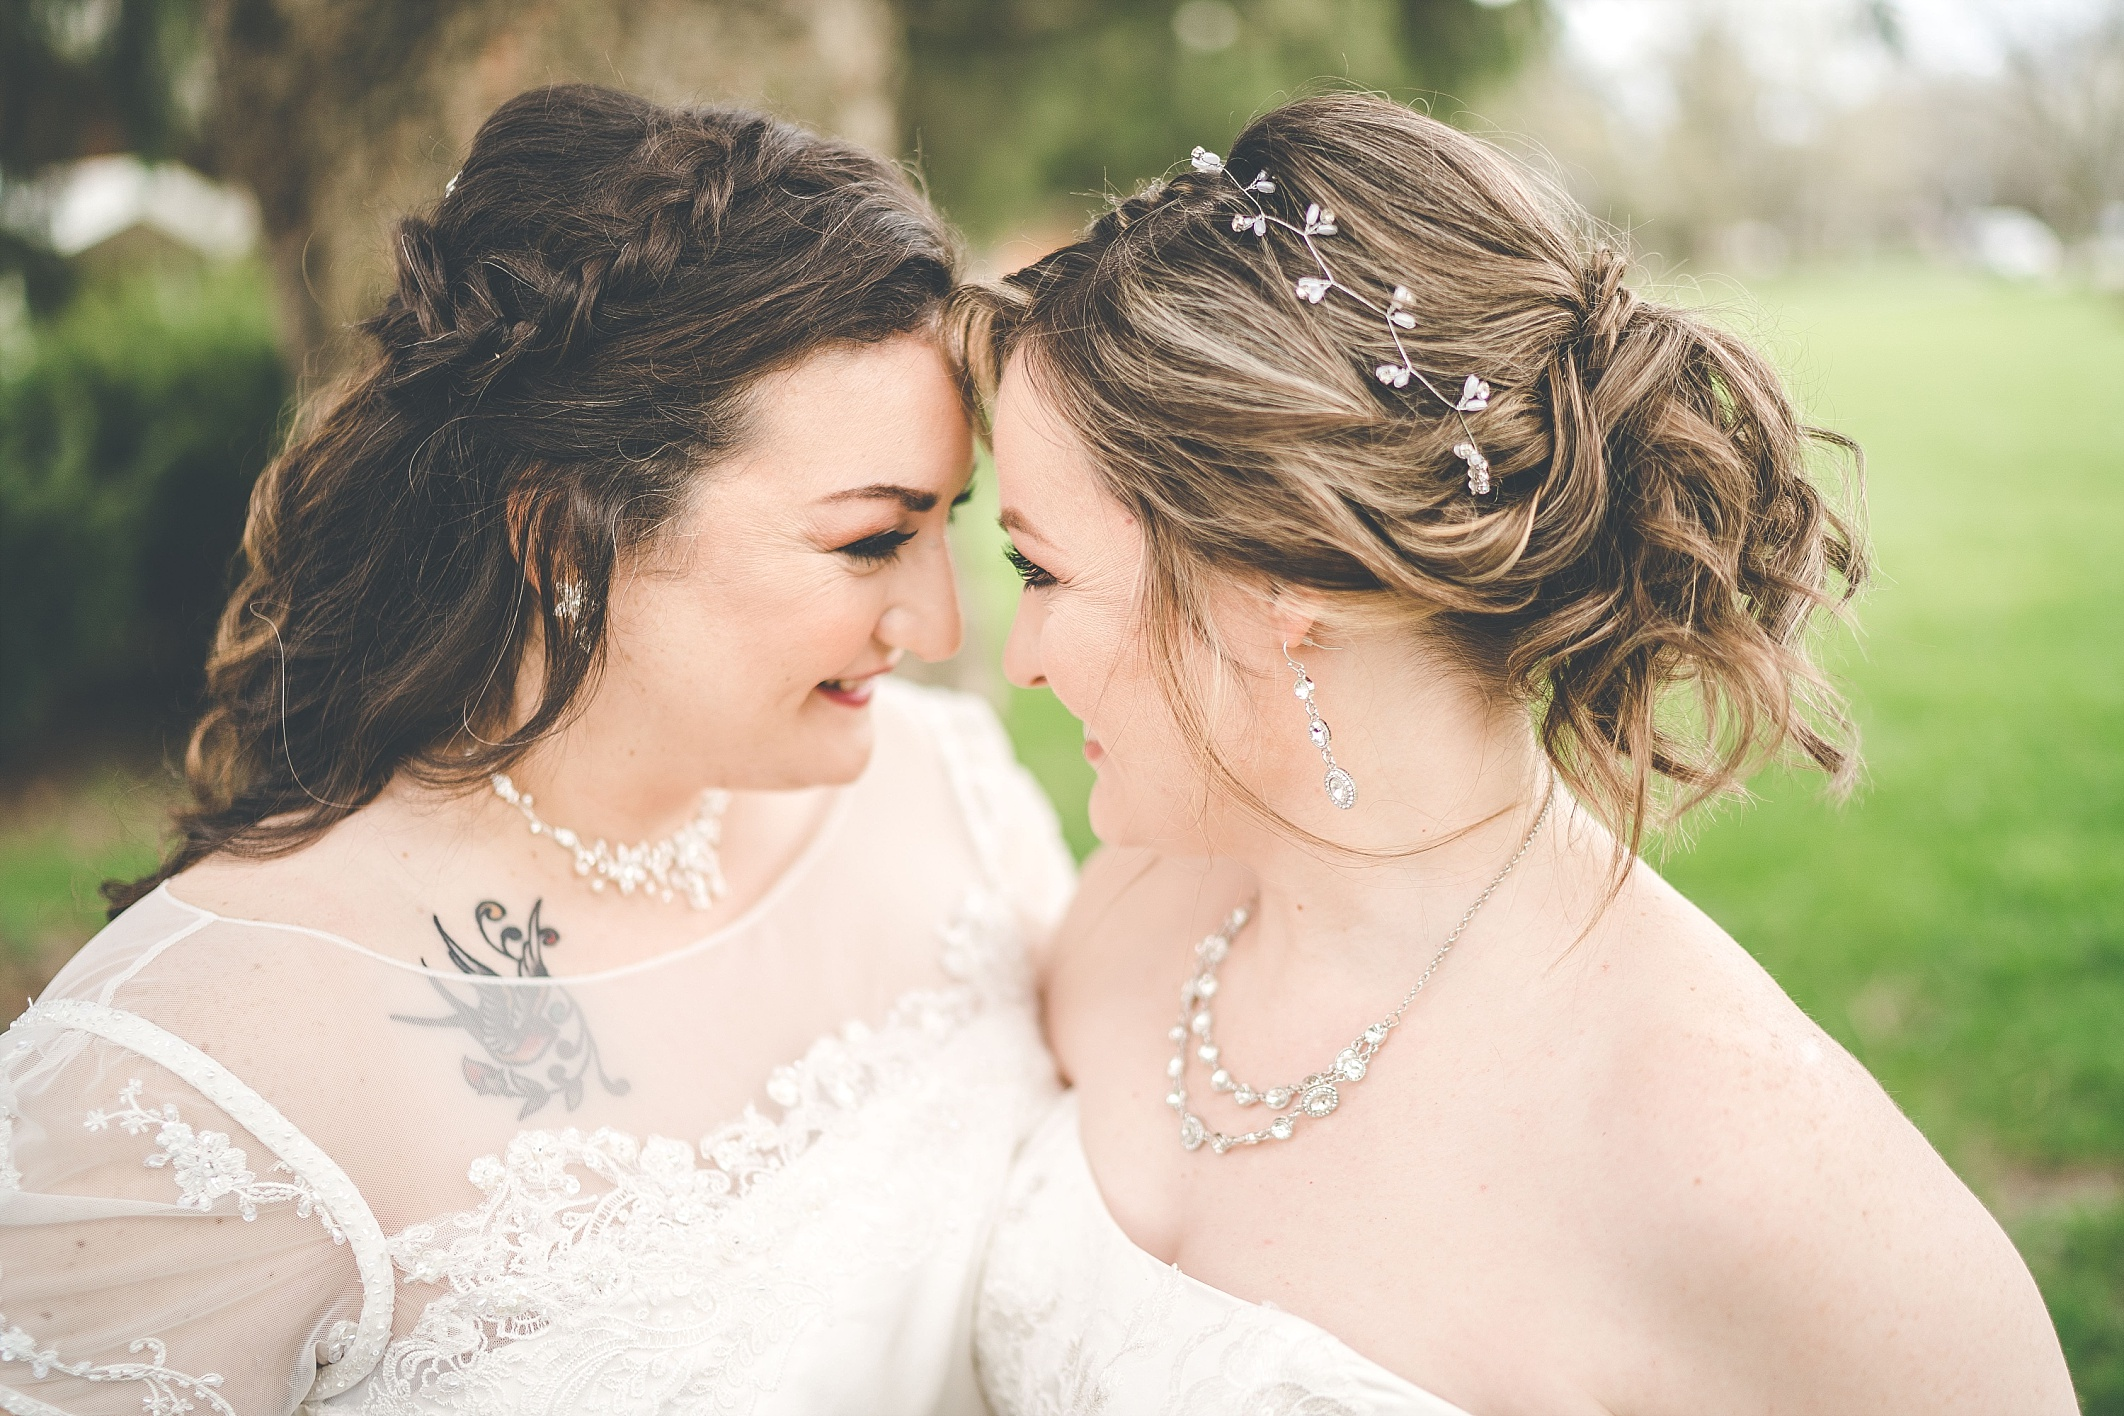 same-sex-wedding-photographer-dayton-ohio-lesbian_0003.jpg